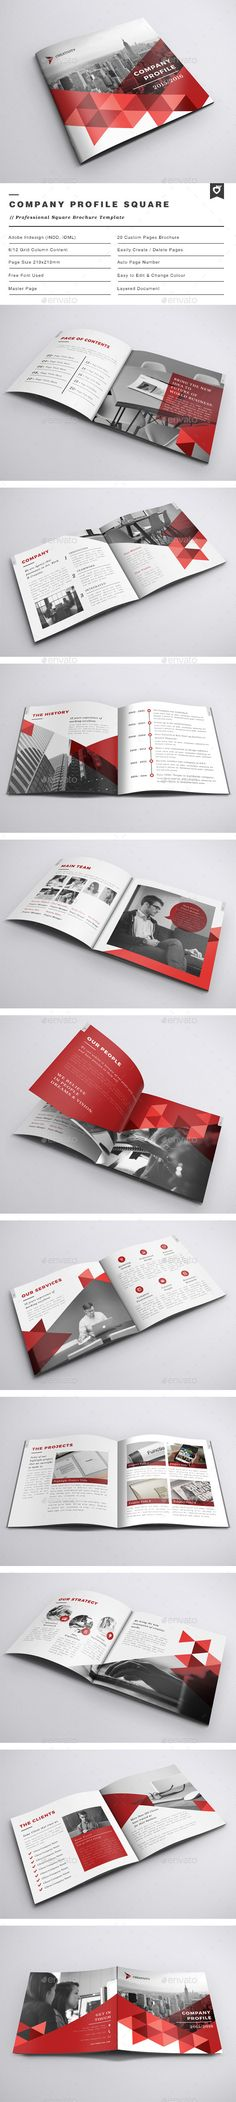 Company Profile Square Brochure Template InDesign INDD #design Download: http://graphicriver.net/item/company-profile-square-brochure/13214957?ref=ksioks